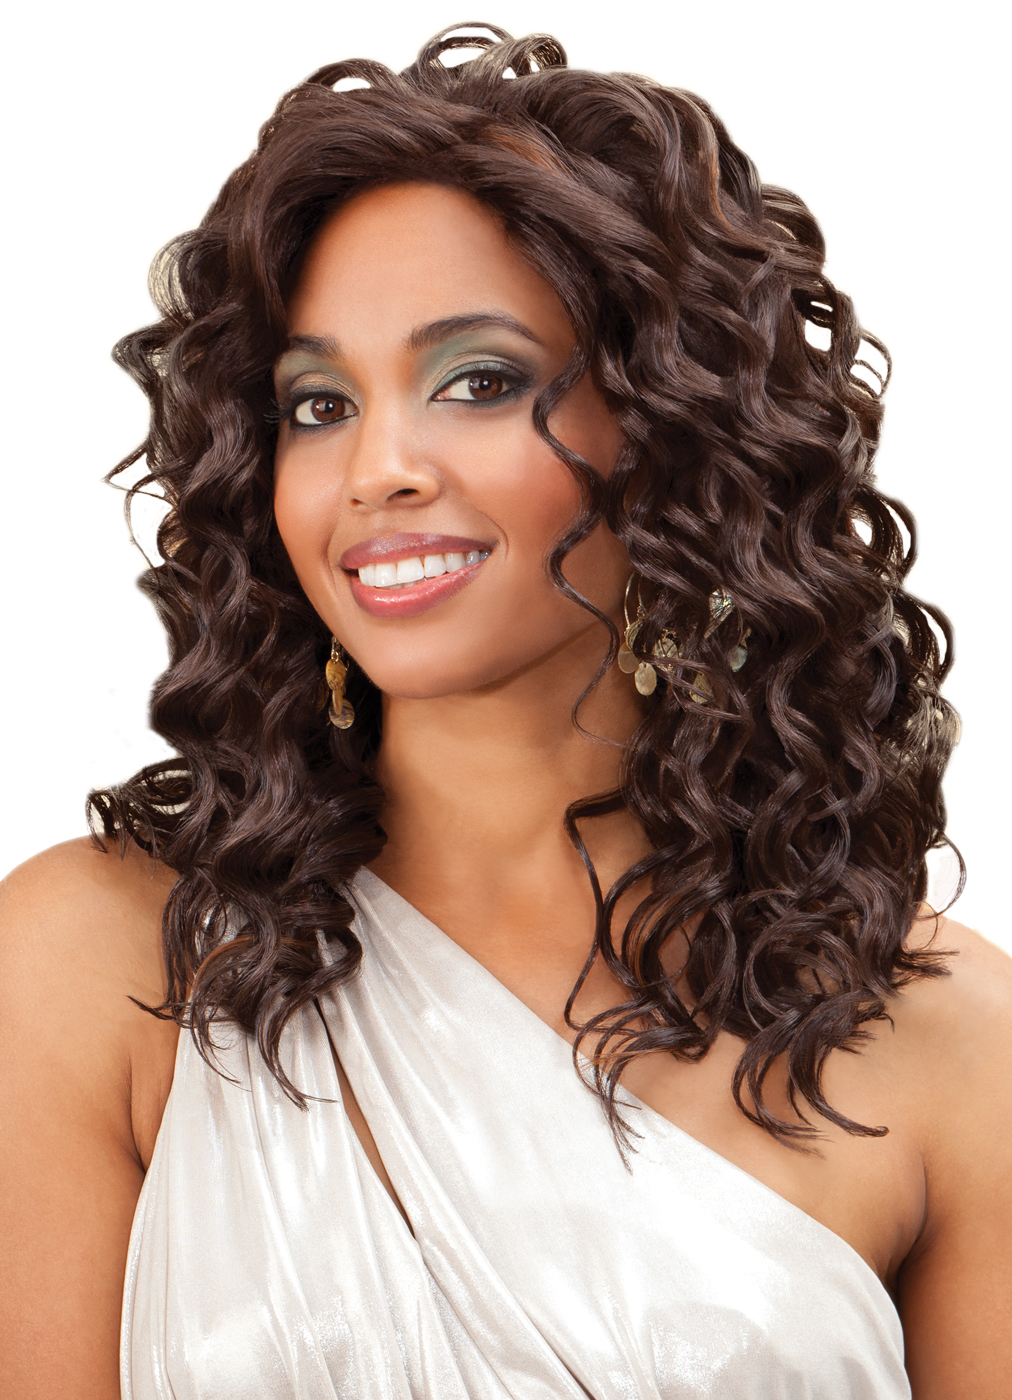 French Hairstyles For Long Hair: 17 French Curl Hairstyle